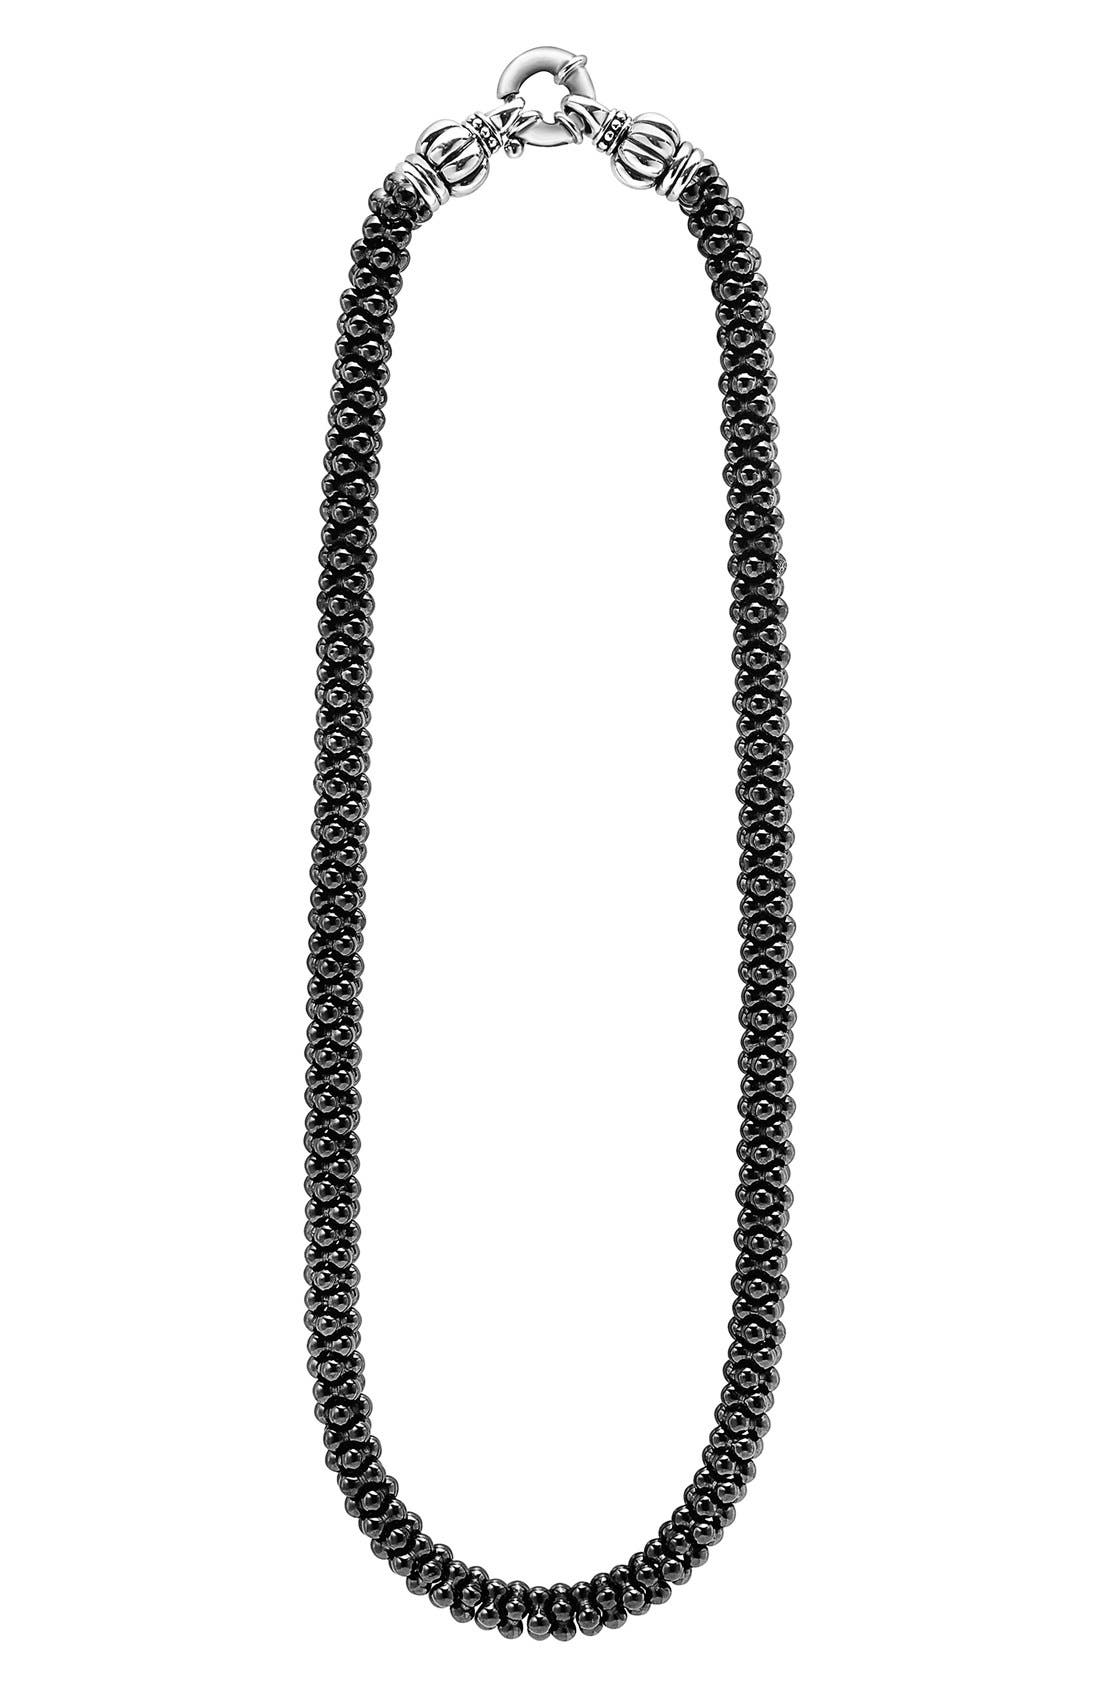 'Black Caviar' 7mm Beaded Necklace,                             Main thumbnail 1, color,                             Black Caviar